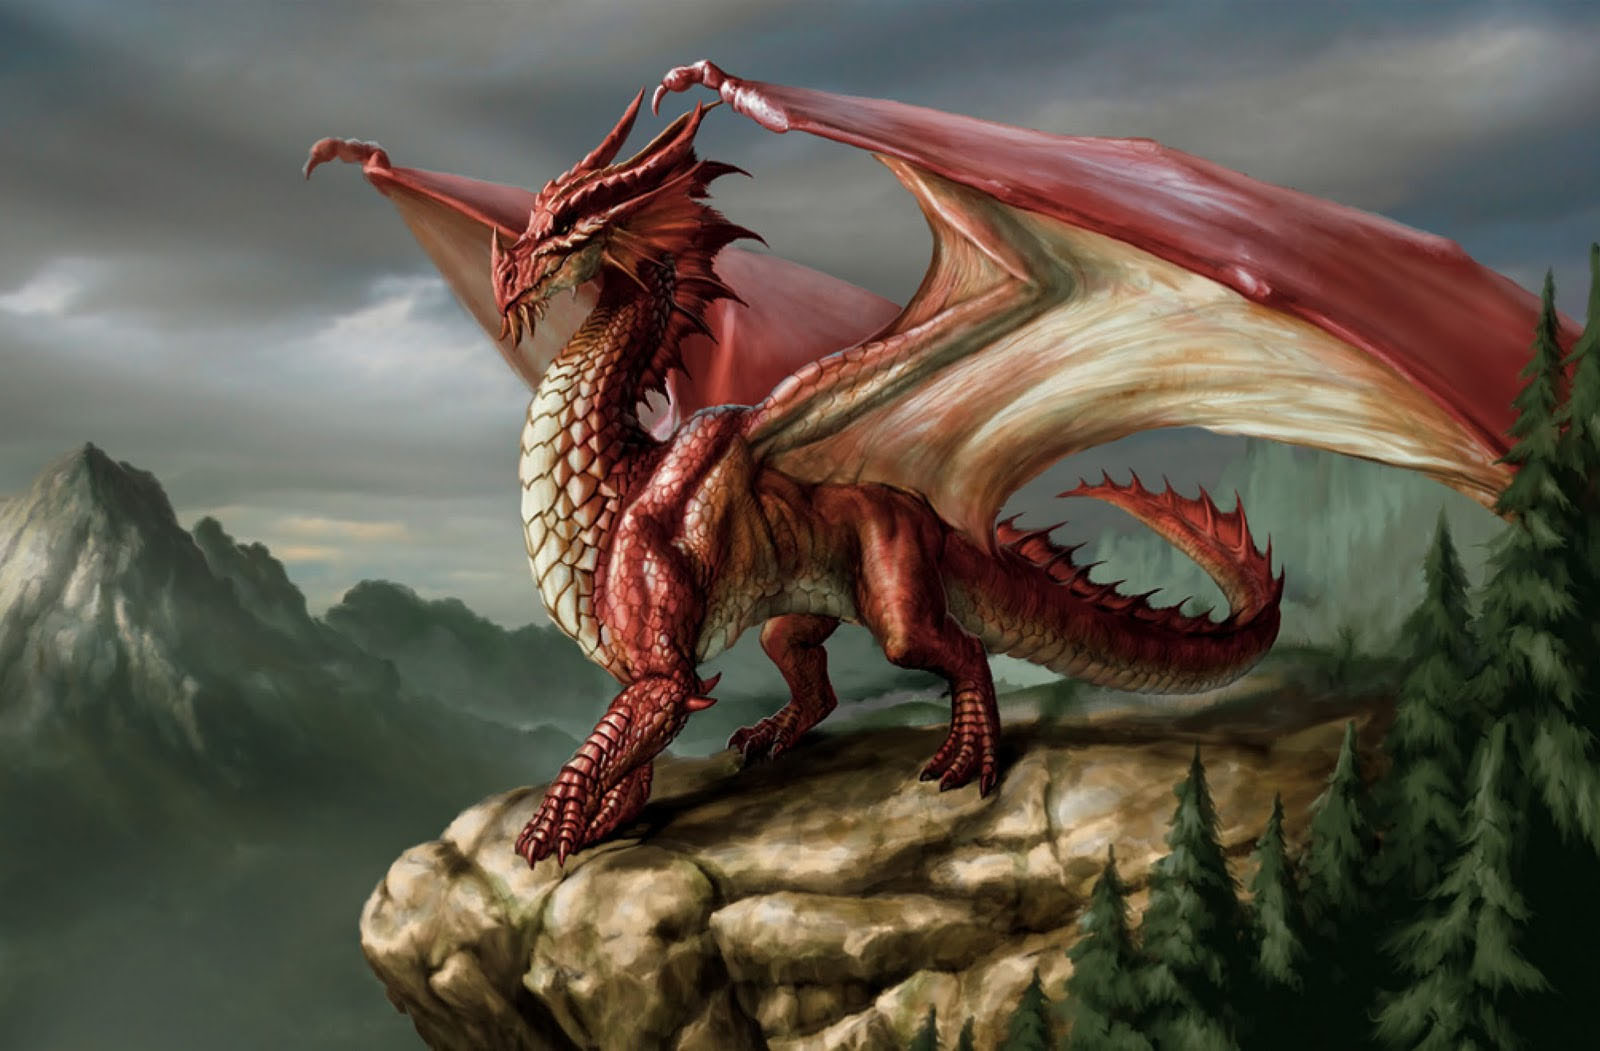 European dragons | Dragonwisdom Wiki | FANDOM powered by Wikia